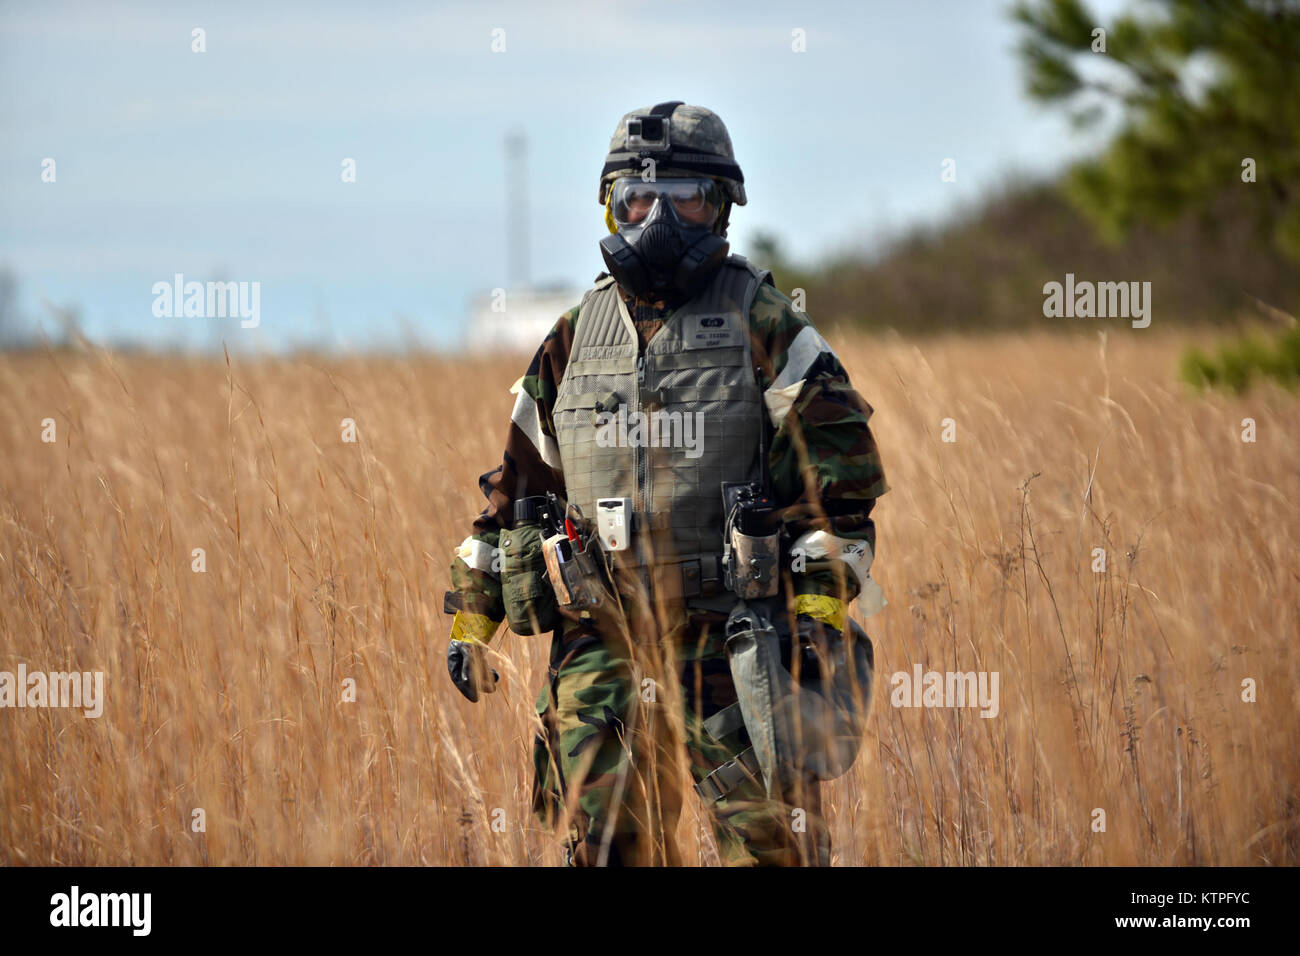 PERRY, GA - Senior Airman Mel Isidro, an  Air National Guard Emergency Manager, searches for radioactive material - Stock Image